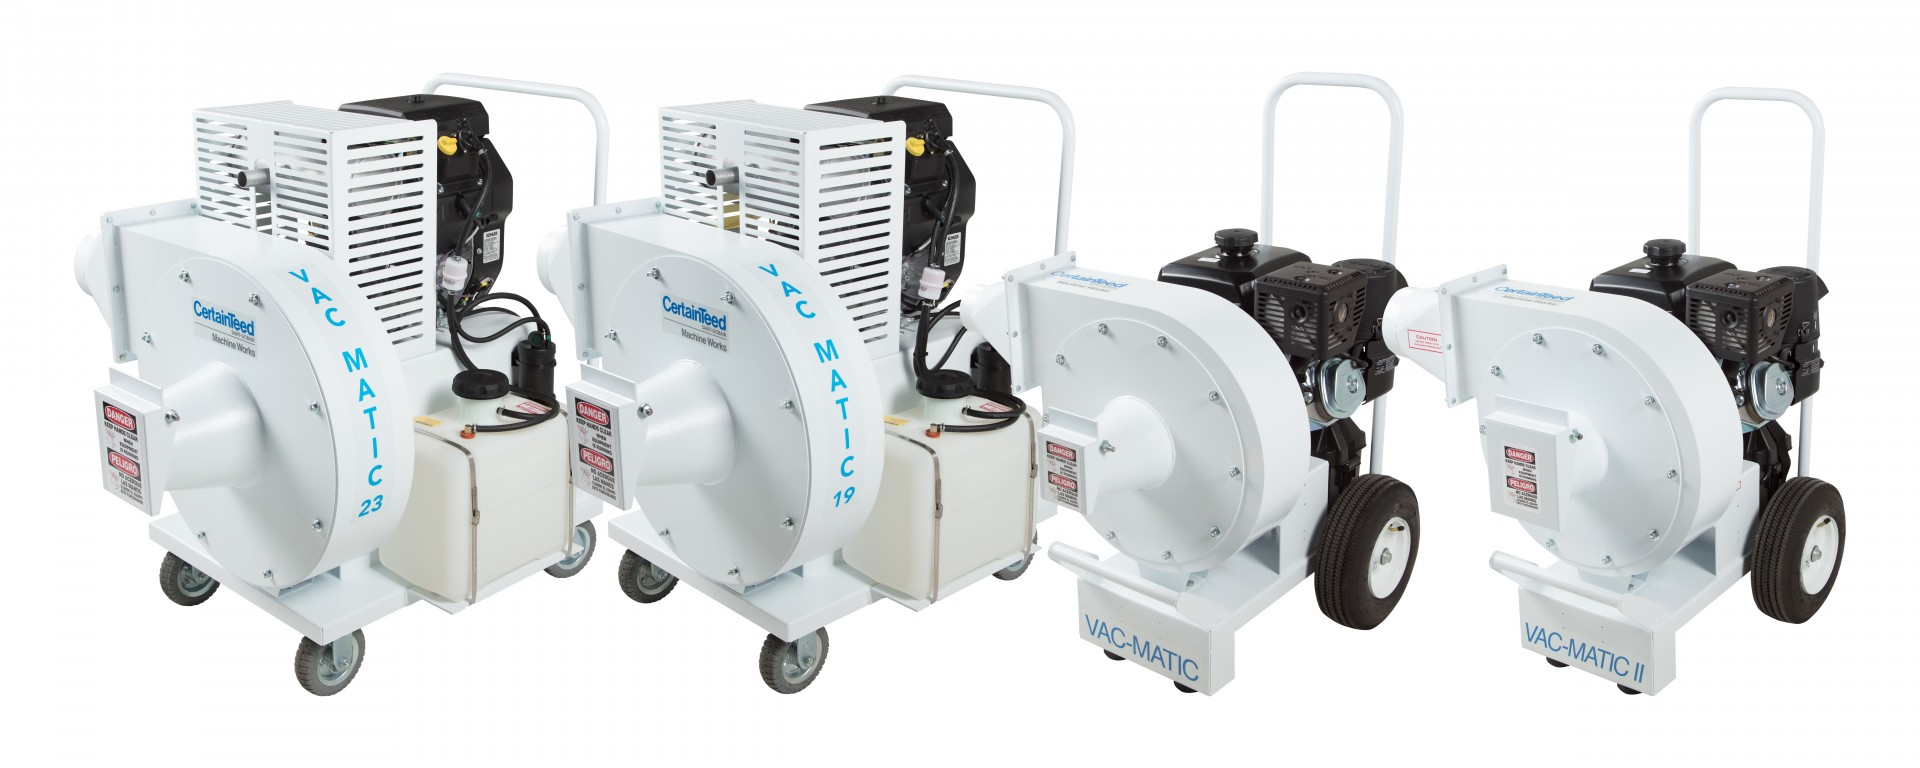 CertainTeed Machine Works expands its line of insulation removal equipment with three new Vac-Matic industrial vacuums and a new debris filtering device.